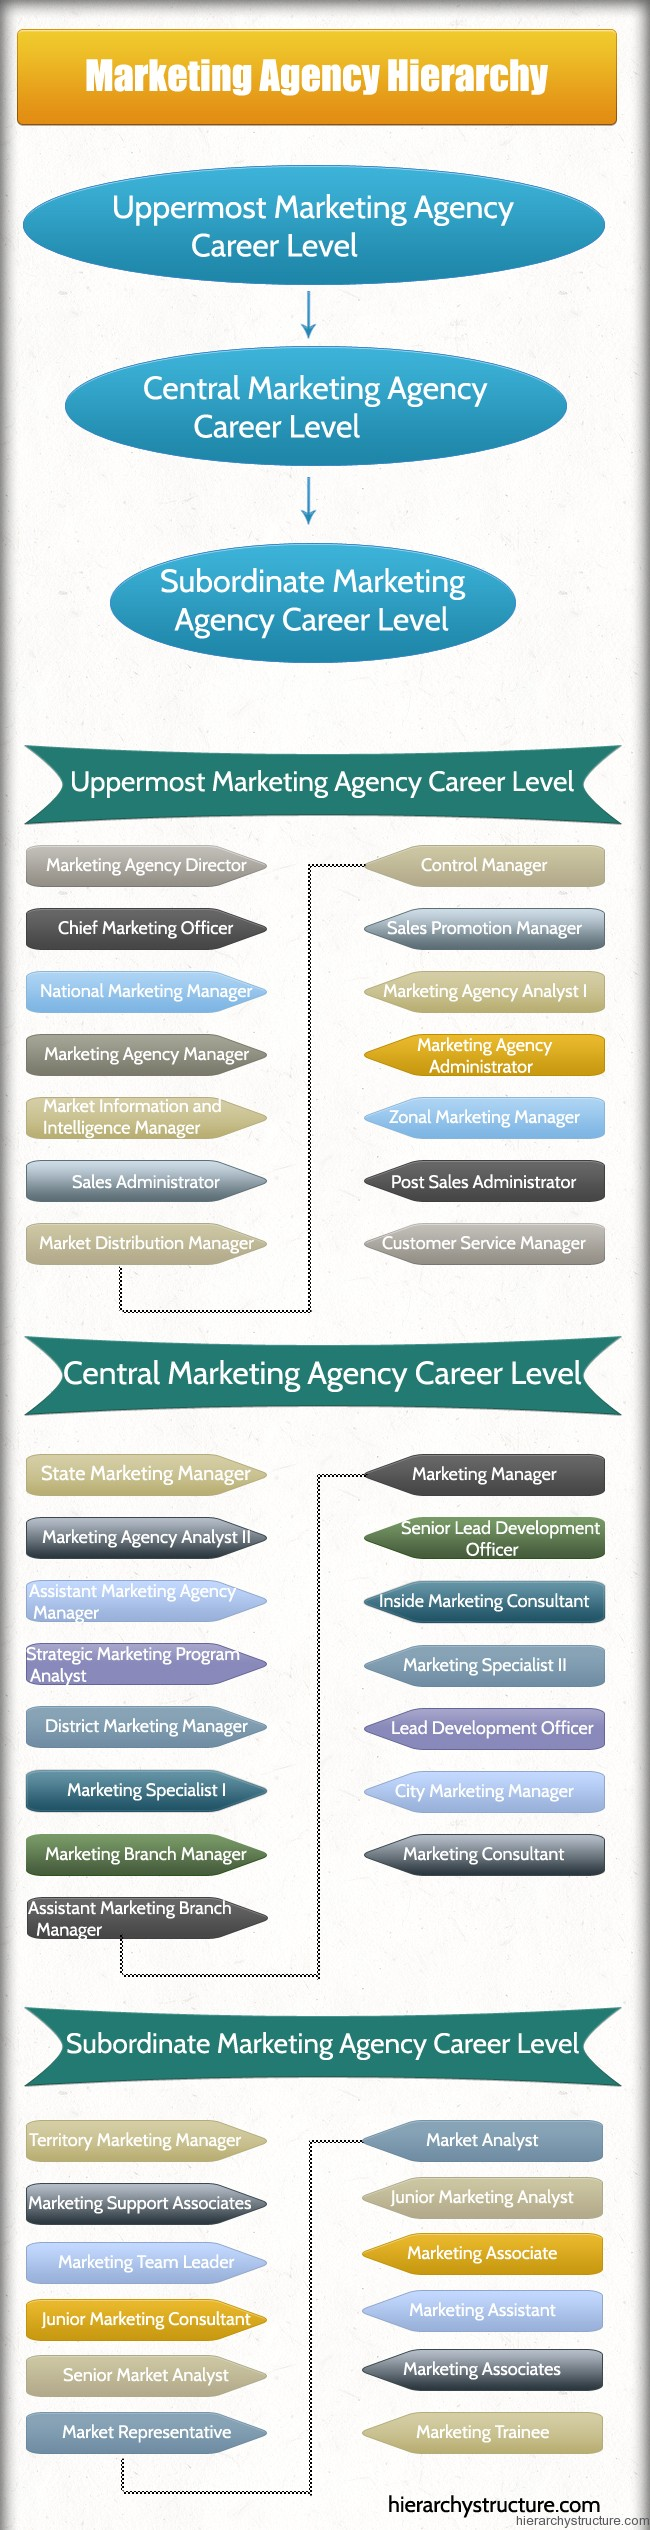 Marketing Agency Hierarchy